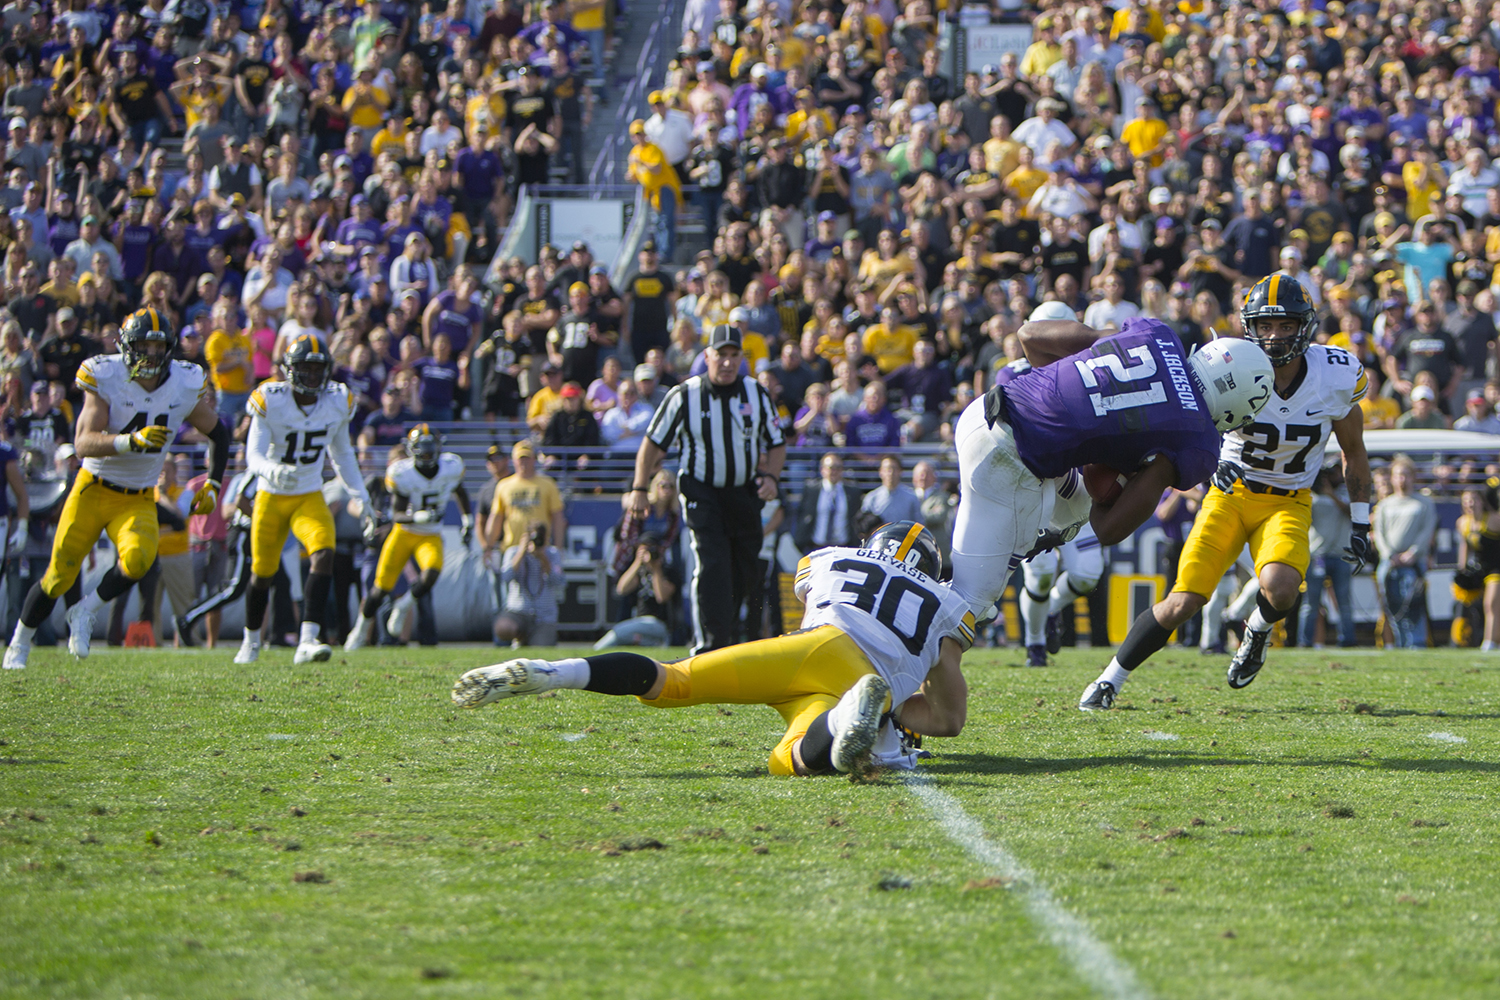 Iowa defensive back Jake Gervase tackles Northwestern running back Justin Jackson during the game between Iowa and Northwestern at Ryan Field in Evanston on Saturday, Oct. 21, 2017. The Wildcats defeated the Hawkeyes, 17-10, in overtime.